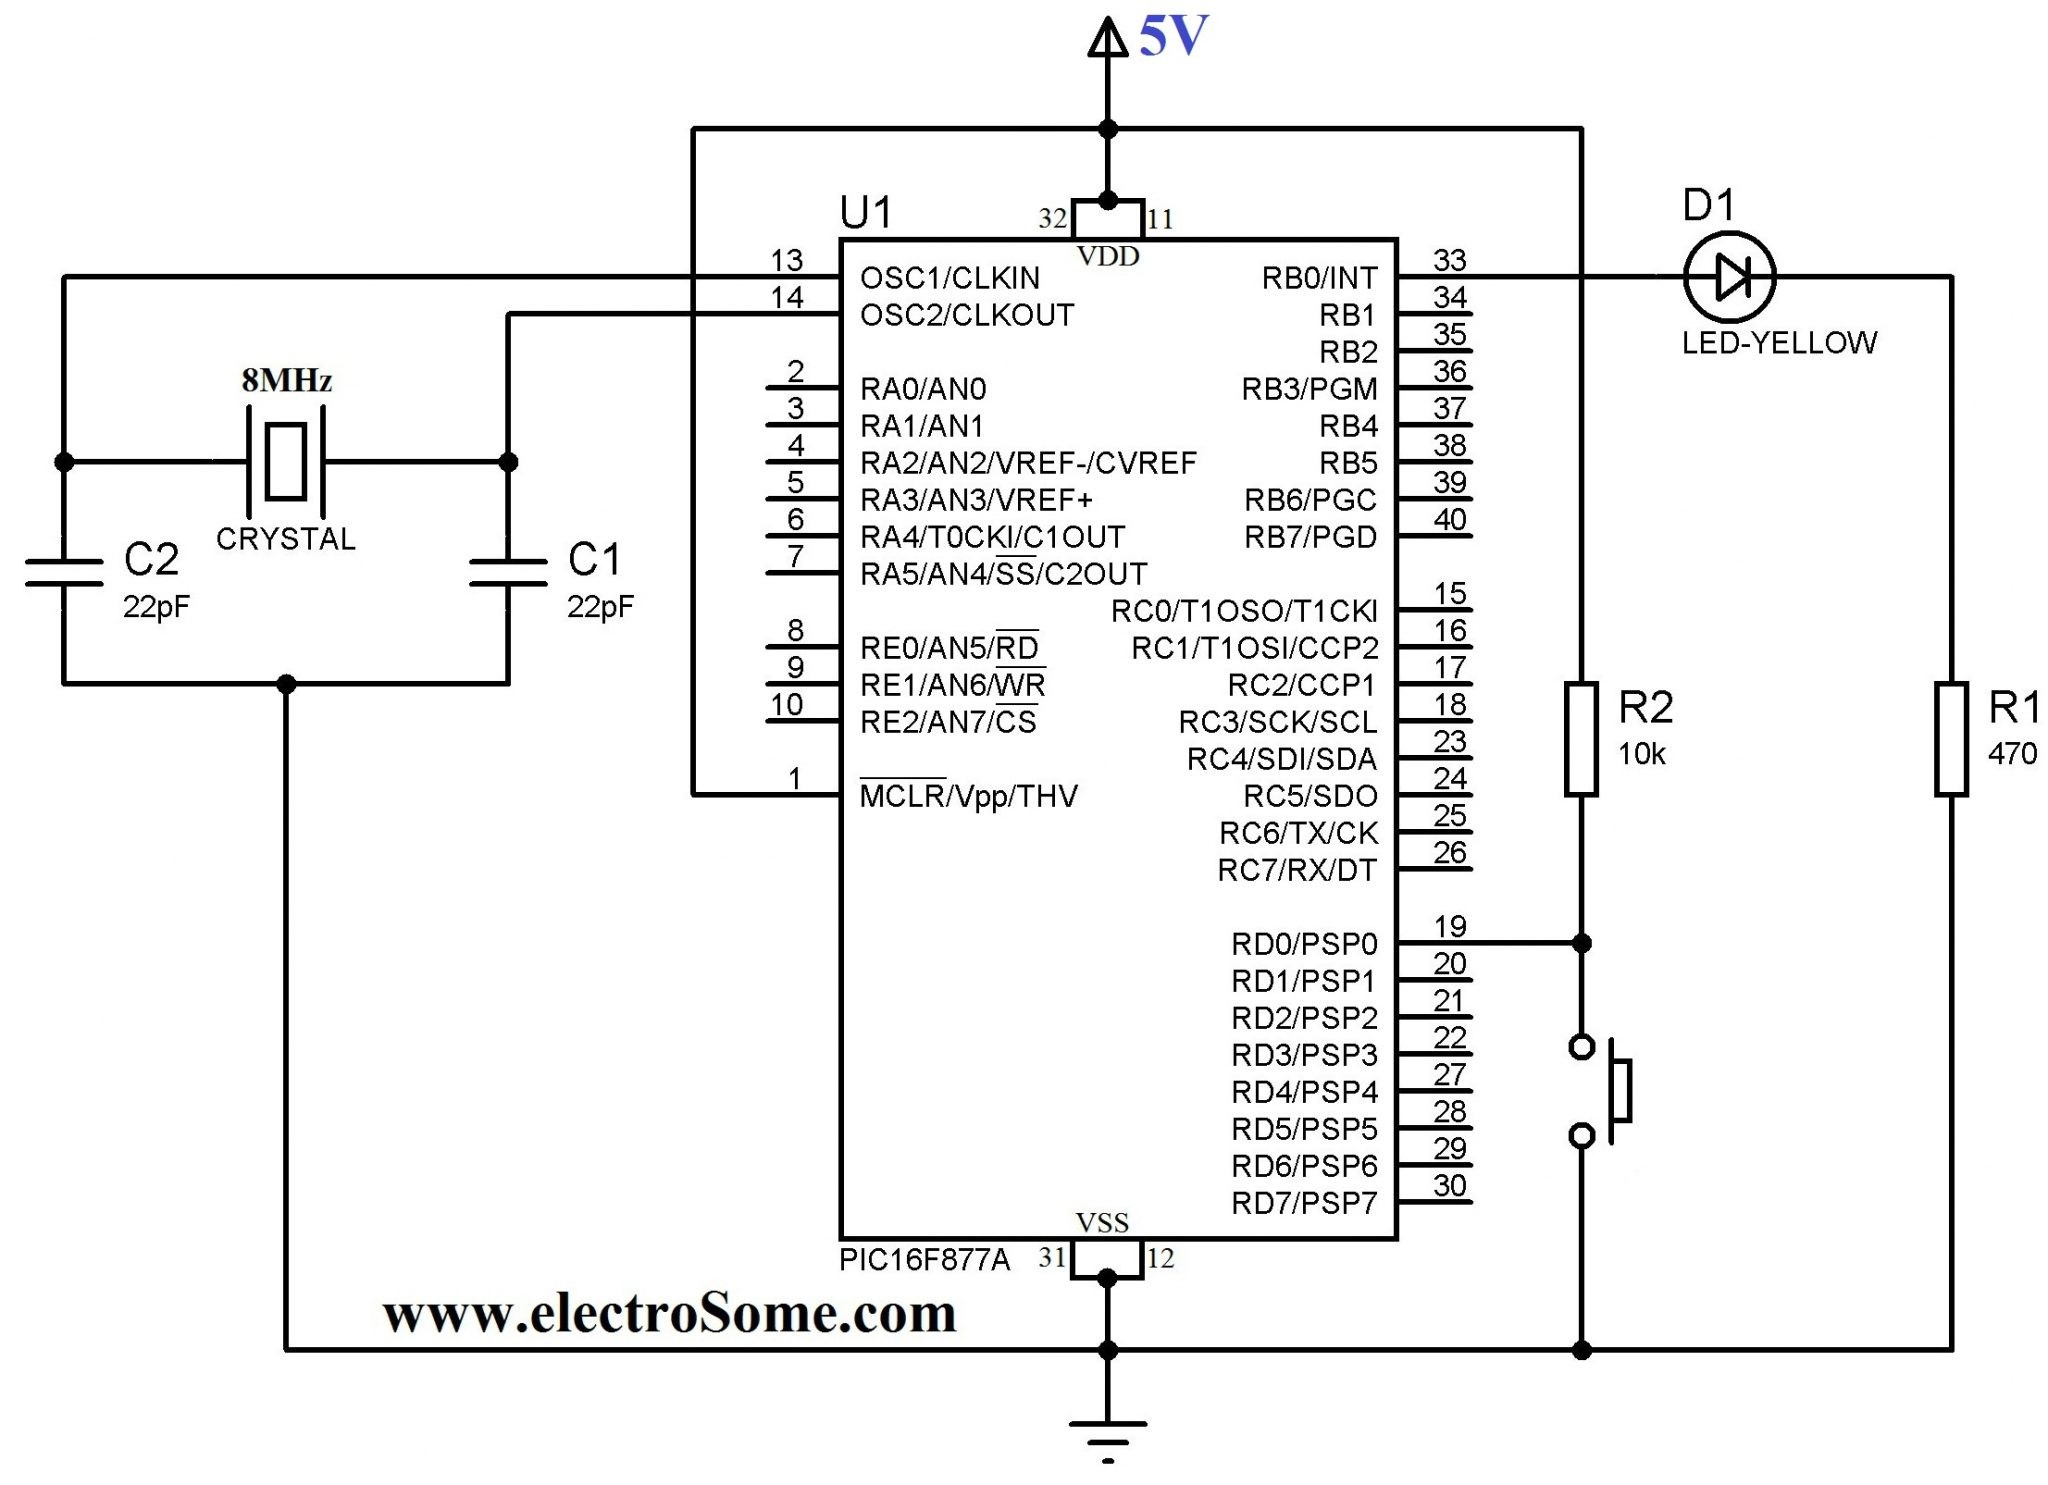 Push Button Starter Switch Wiring Diagram Circuit Using 11N - Push Button Starter Switch Wiring Diagram